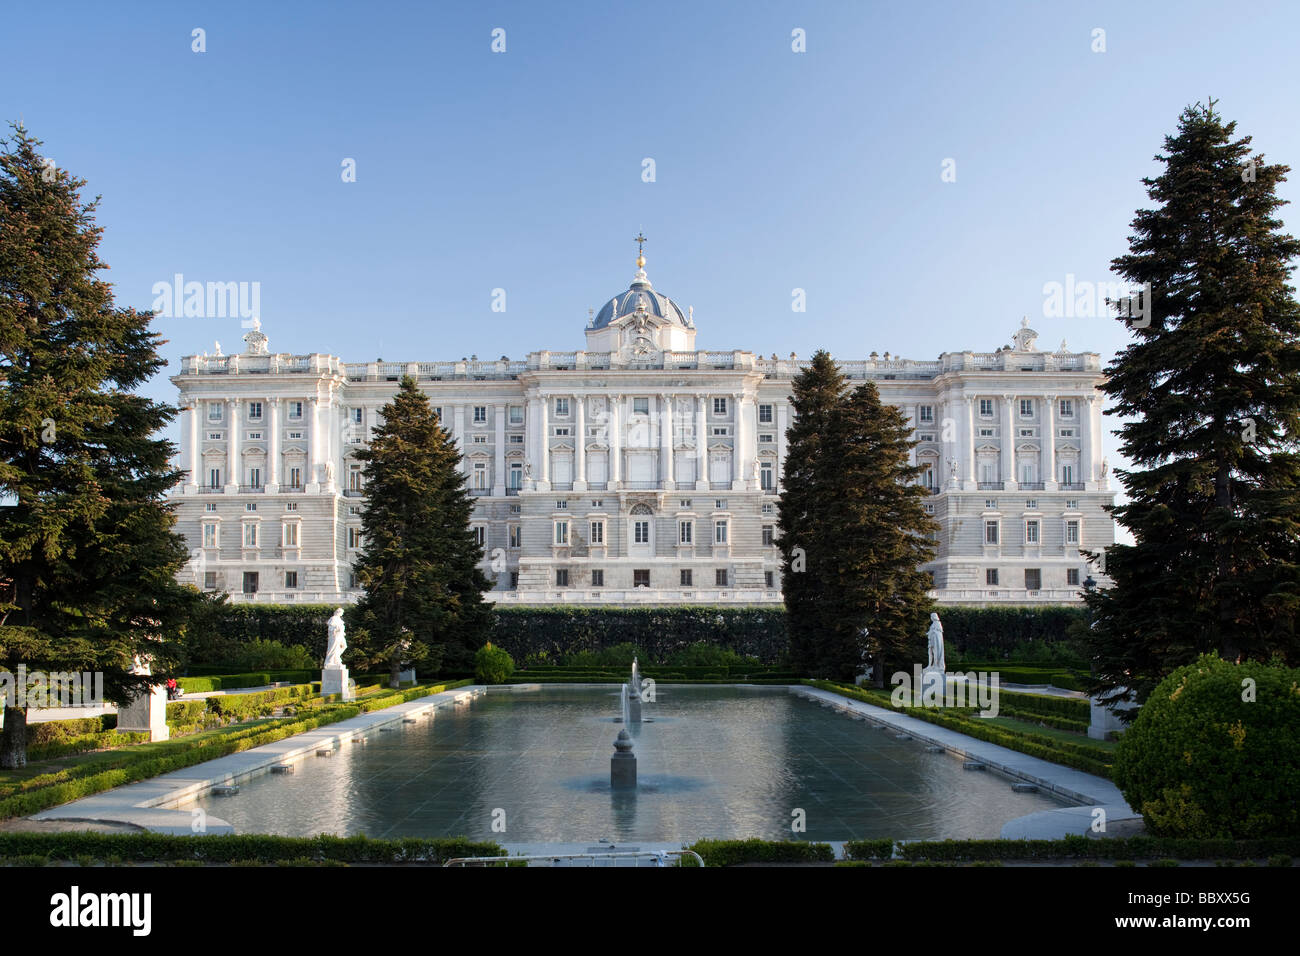 Royal Palace, Madrid, Spain - Stock Image